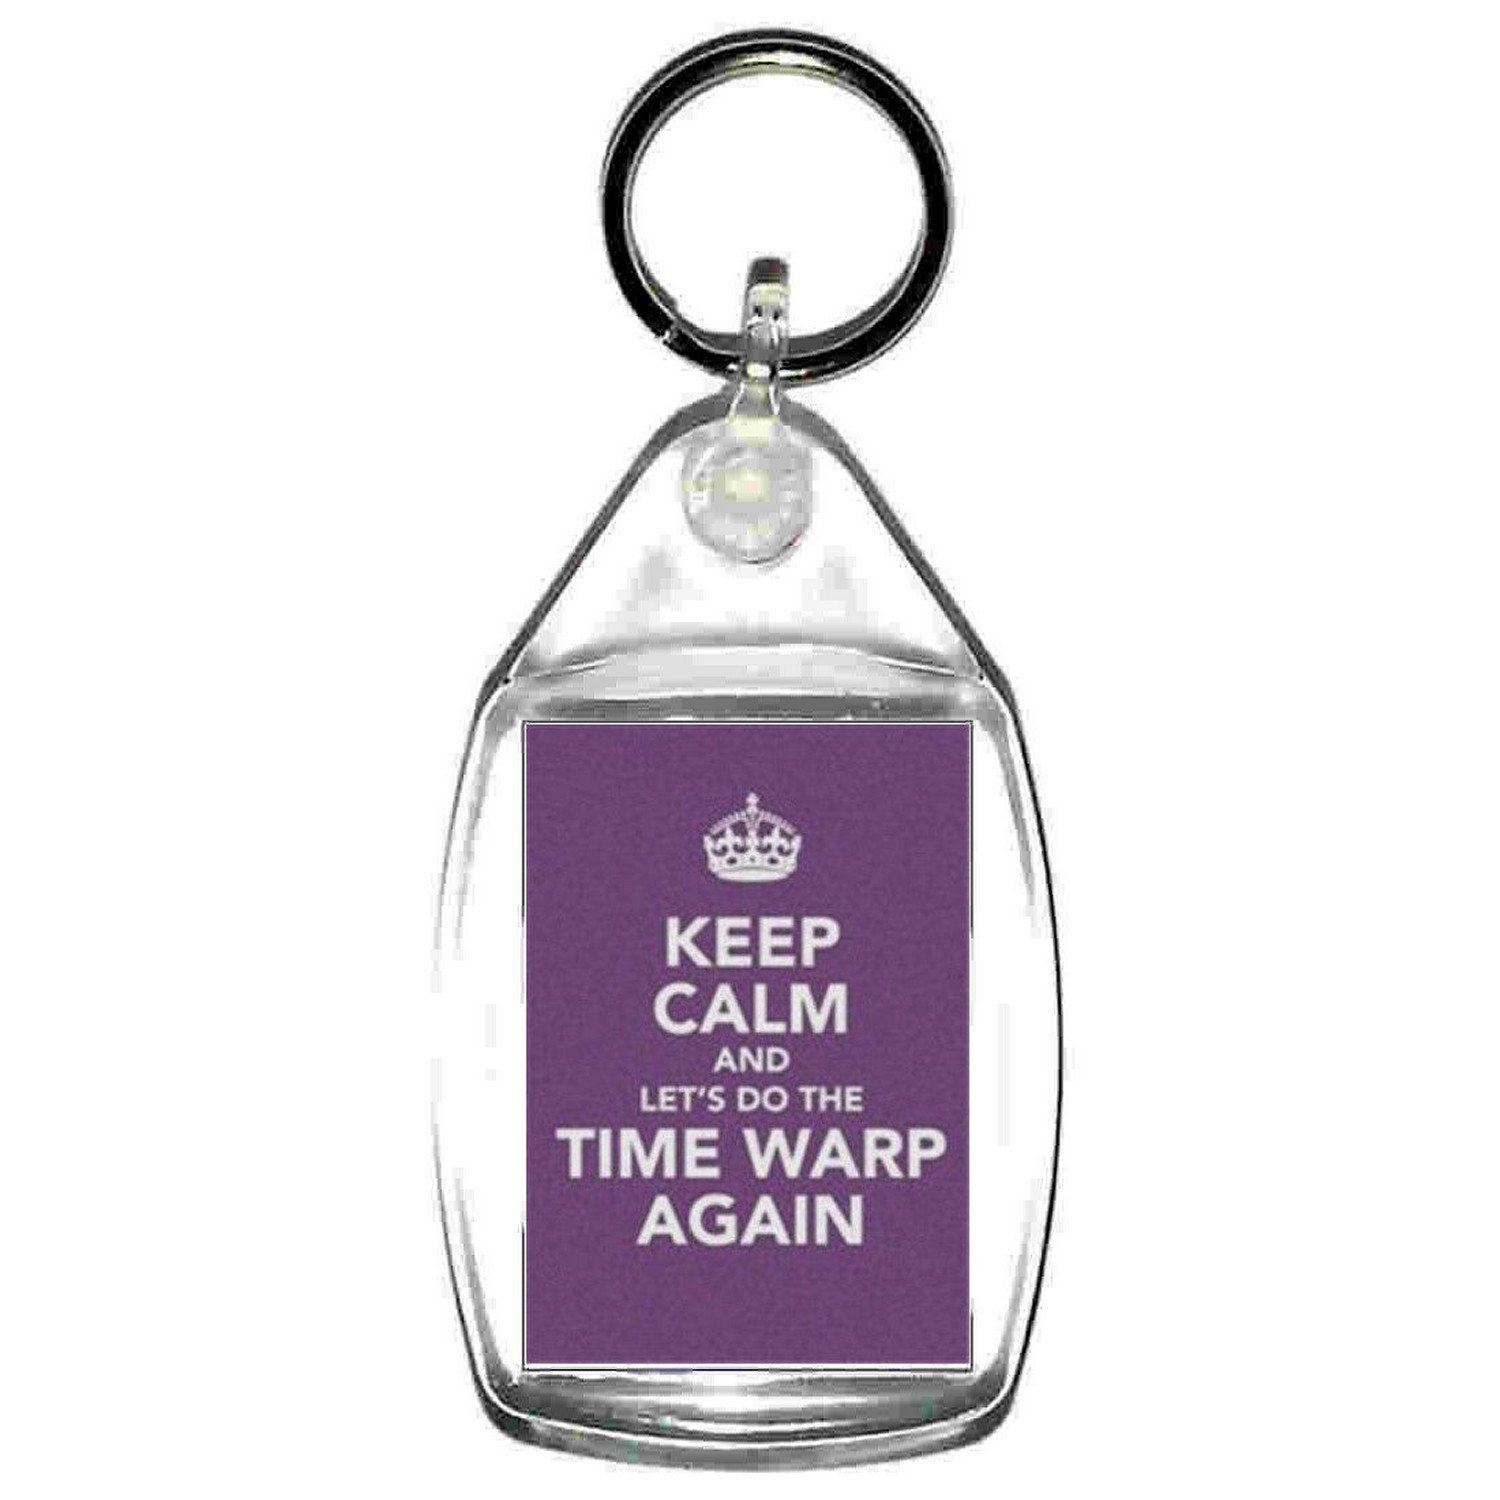 keyring double sided keep calm timewarp design, keychain